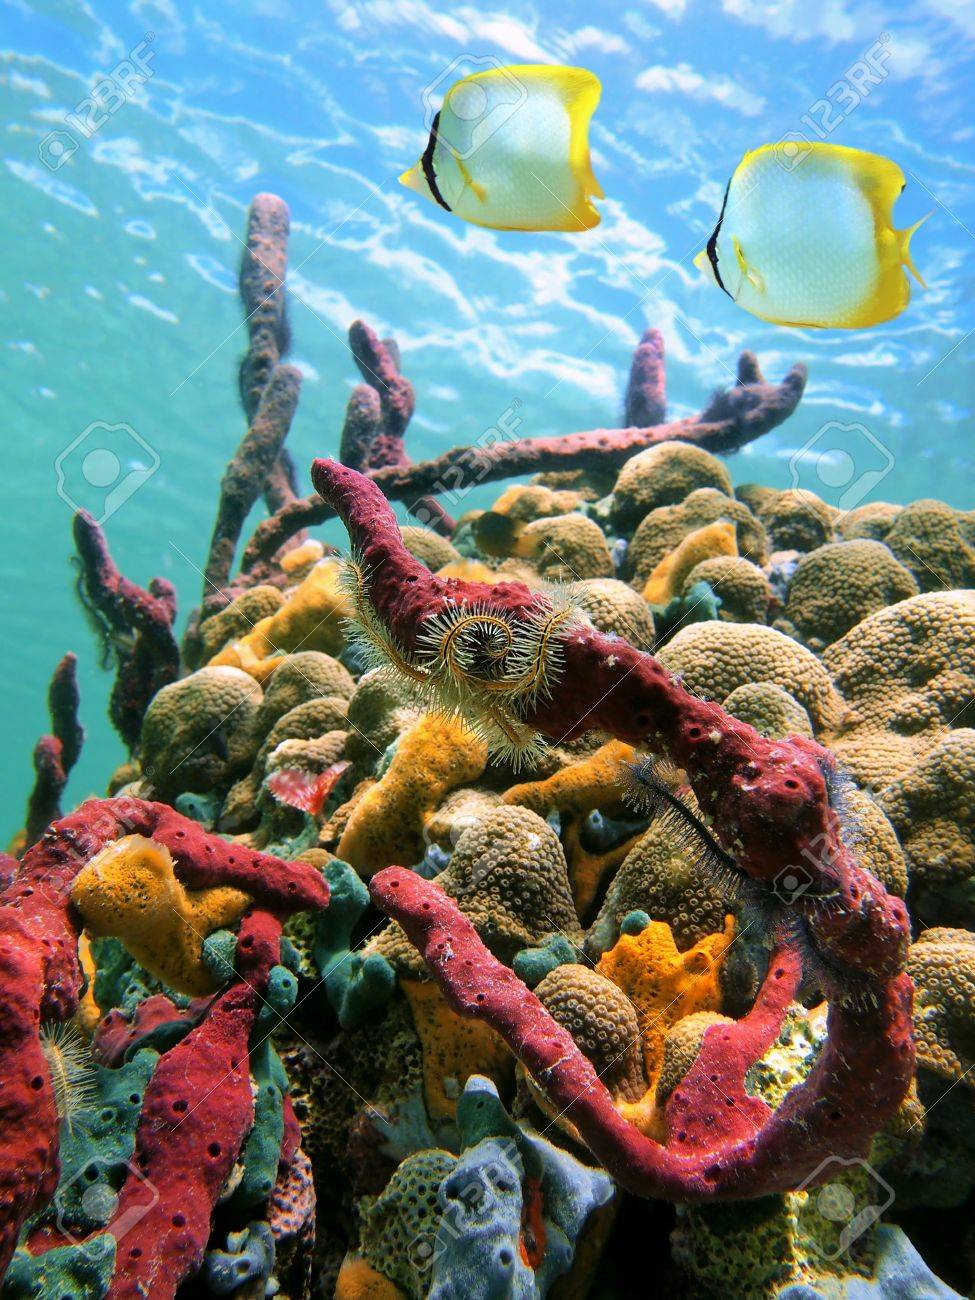 Colorful sea sponges and tropical fish in a coral reef  with water surface in background, Caribbean sea Stock Photo - 11535206